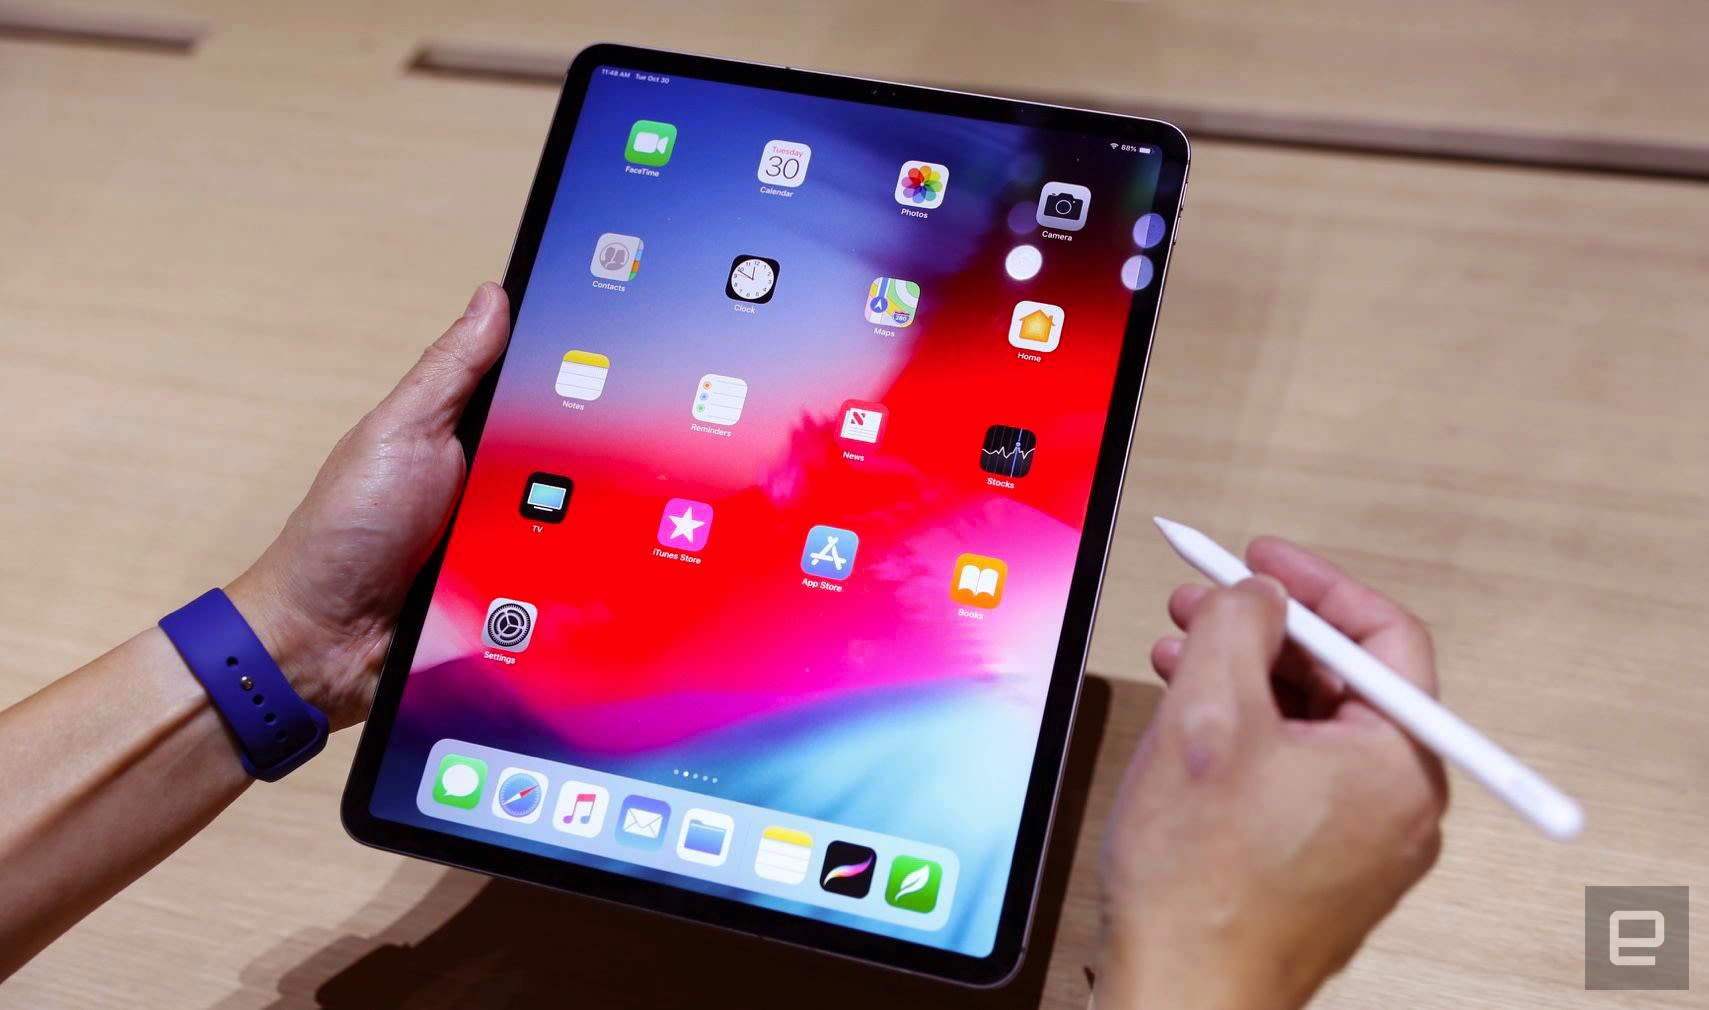 Apple iPad Pro (2018) hands-on: Even closer to a computer